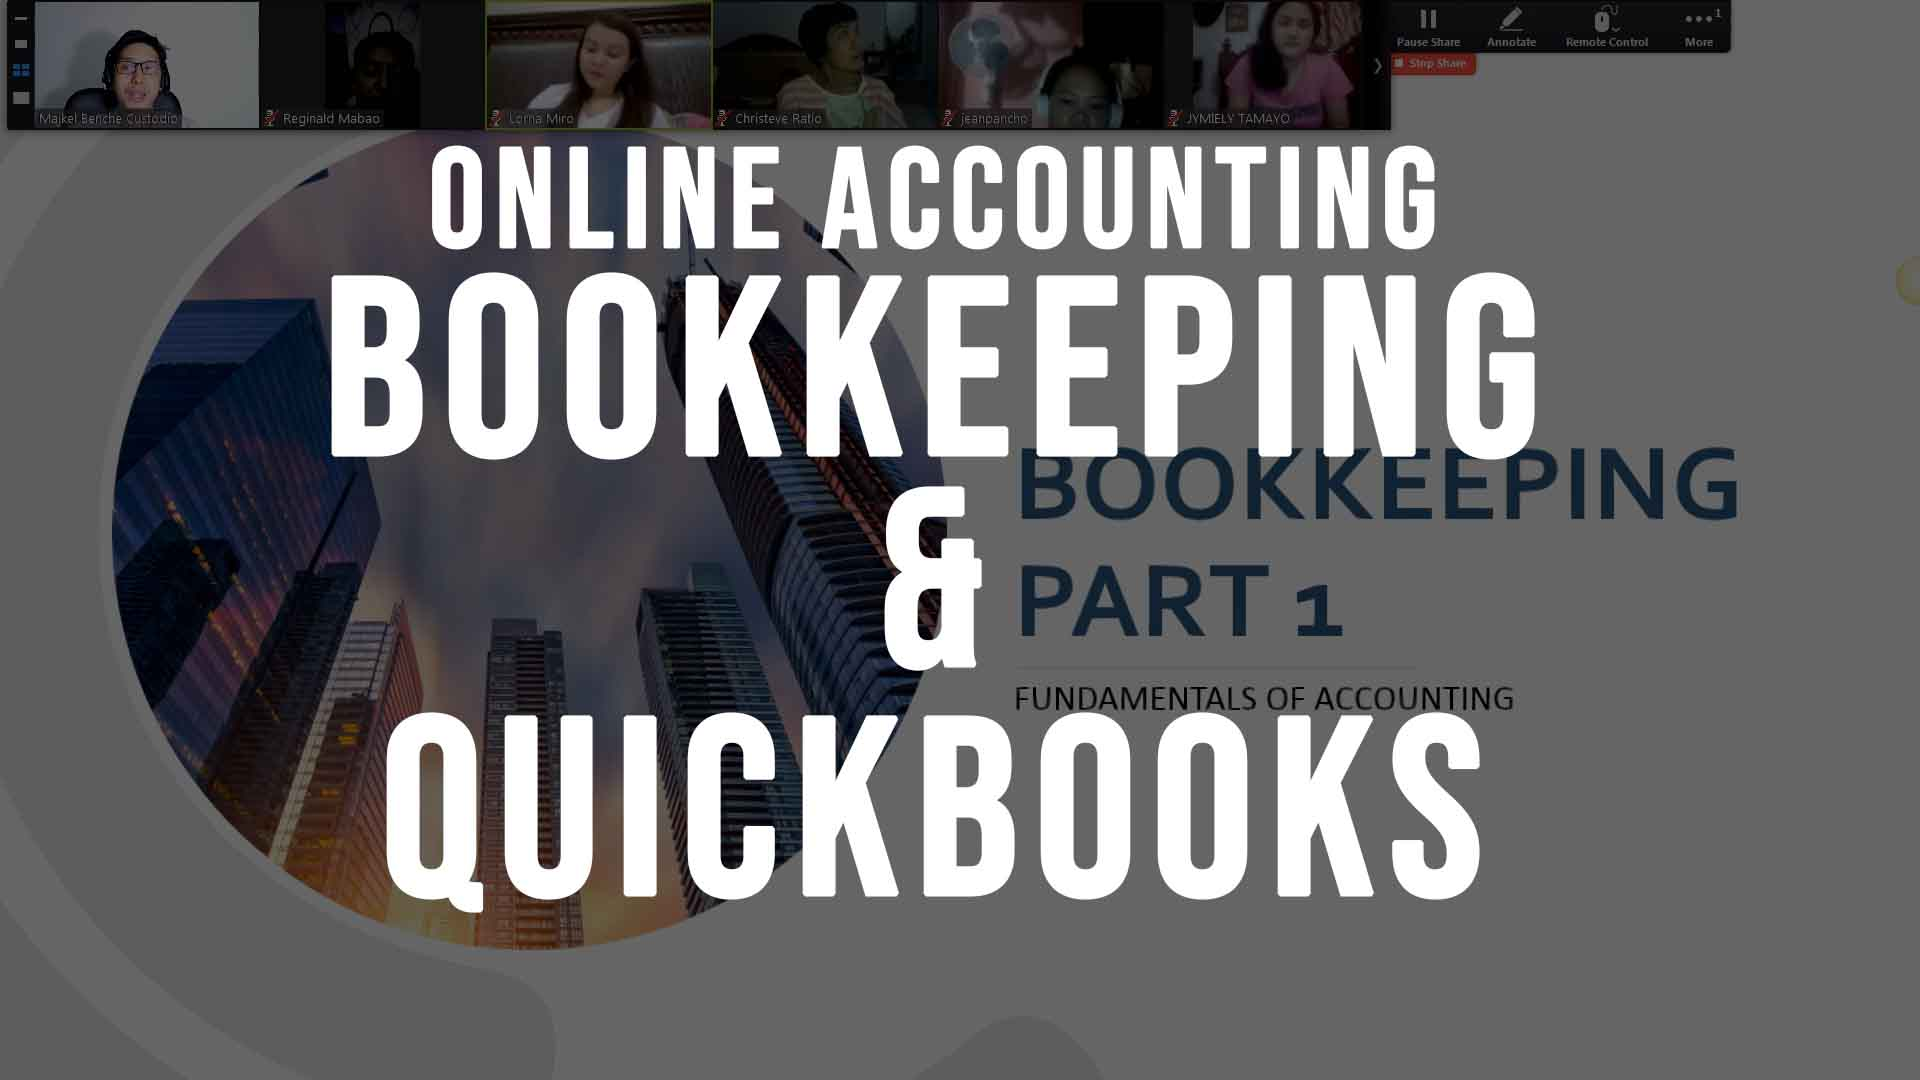 bookkeeping-1.jpg